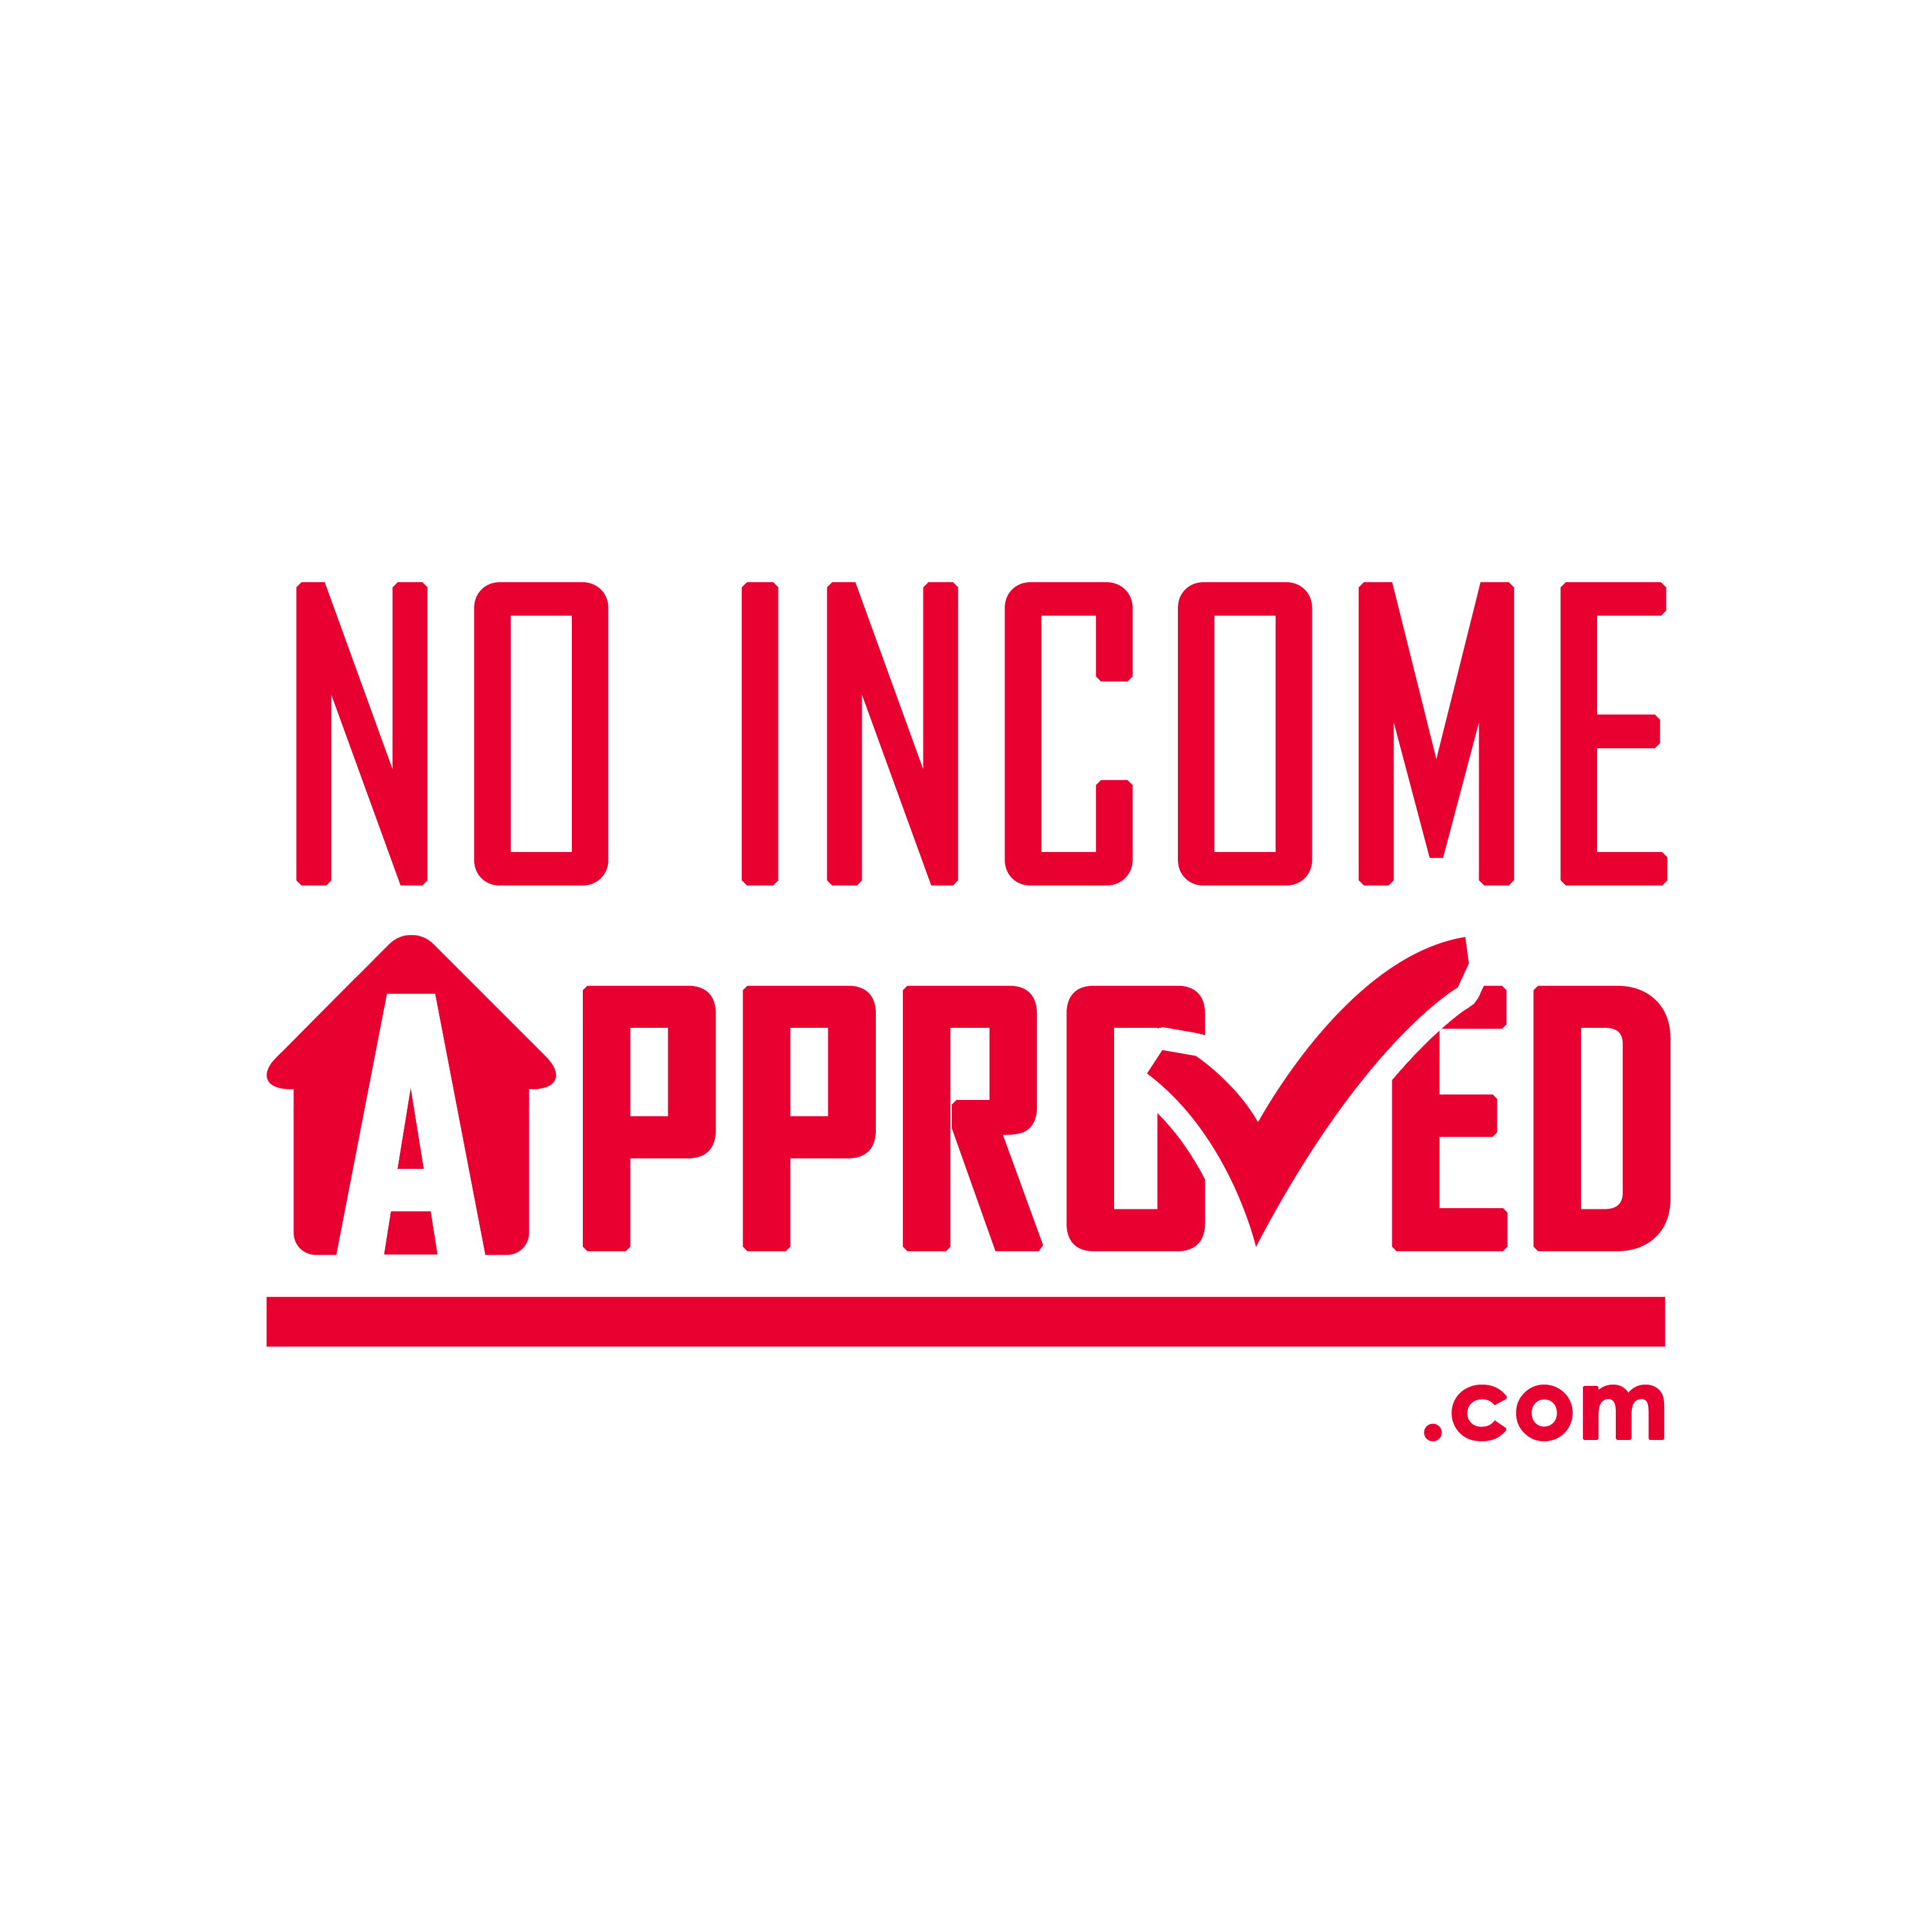 NoIncomeApproved.com - Stated Income Loans